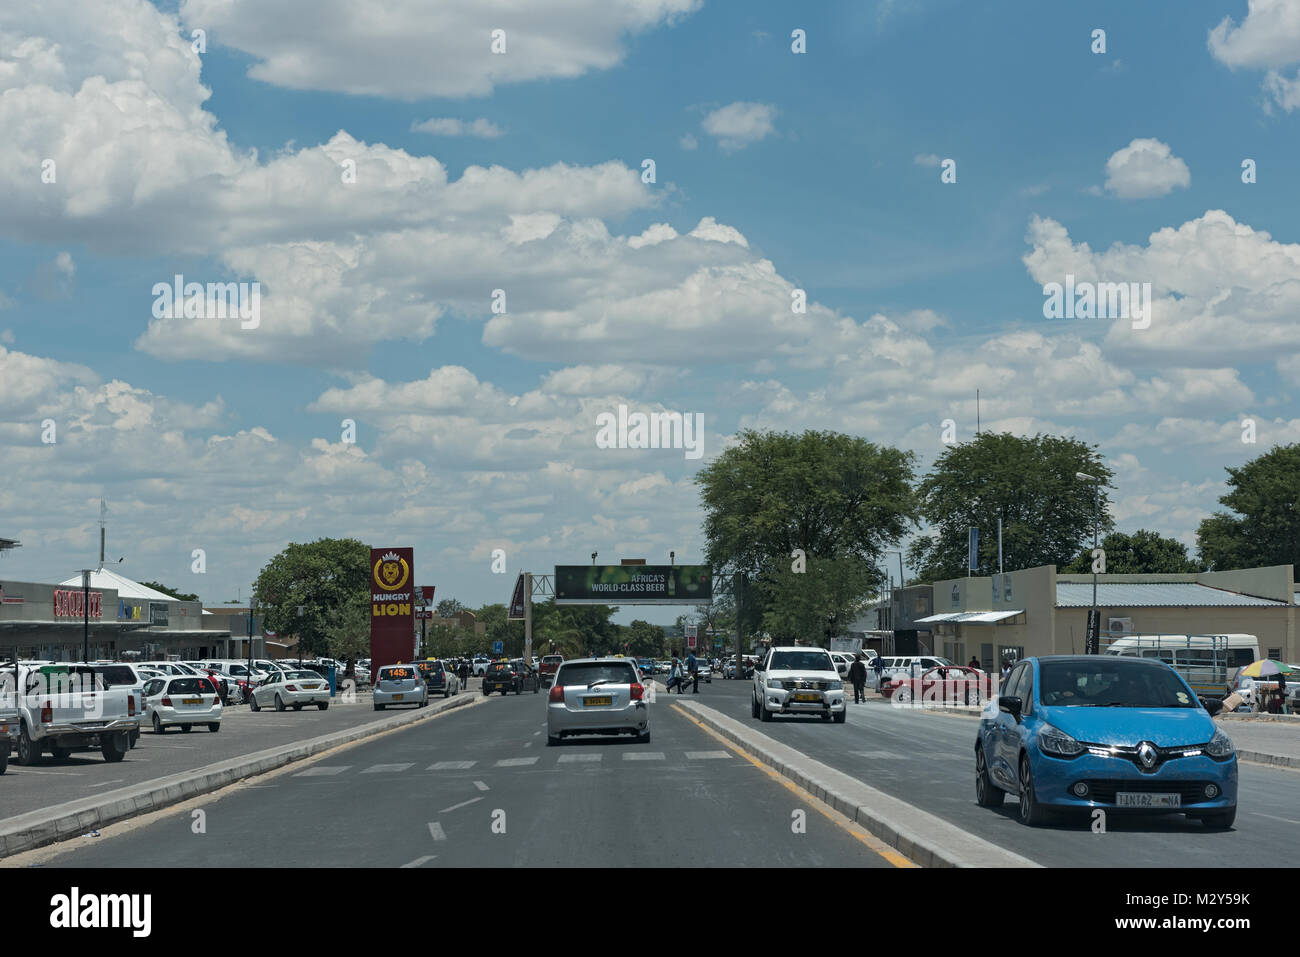 Cars on a main street in the city Rundu in the north of Namibia - Stock Image